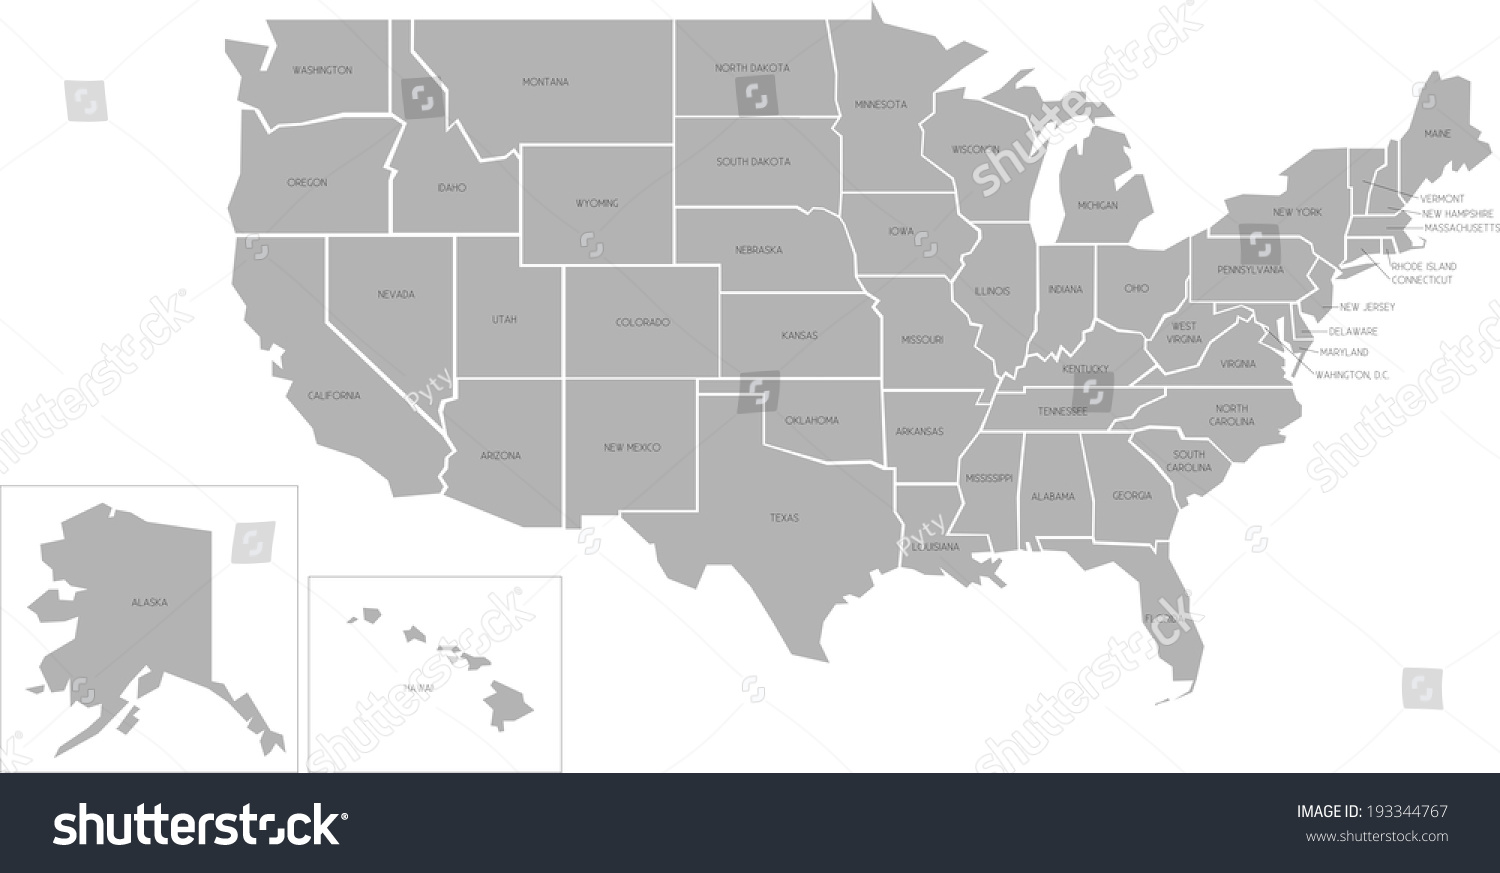 Simplified Vector Map United States America Stock Vector - United states map arkansas